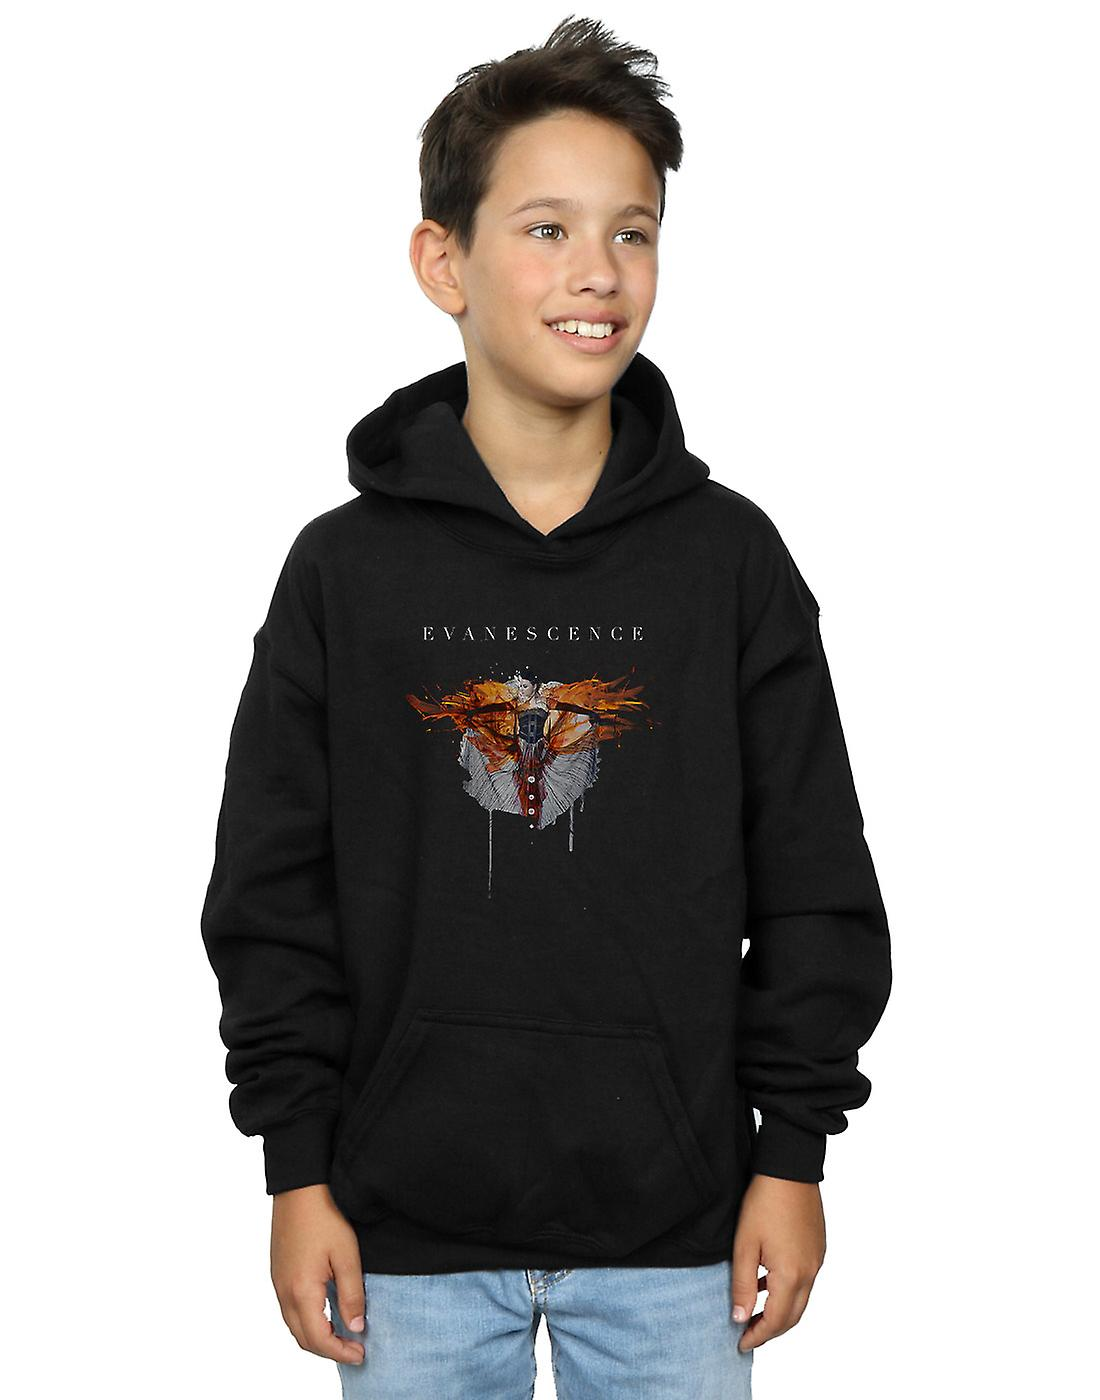 Sudaderas: Dude Perfect | Redbubble